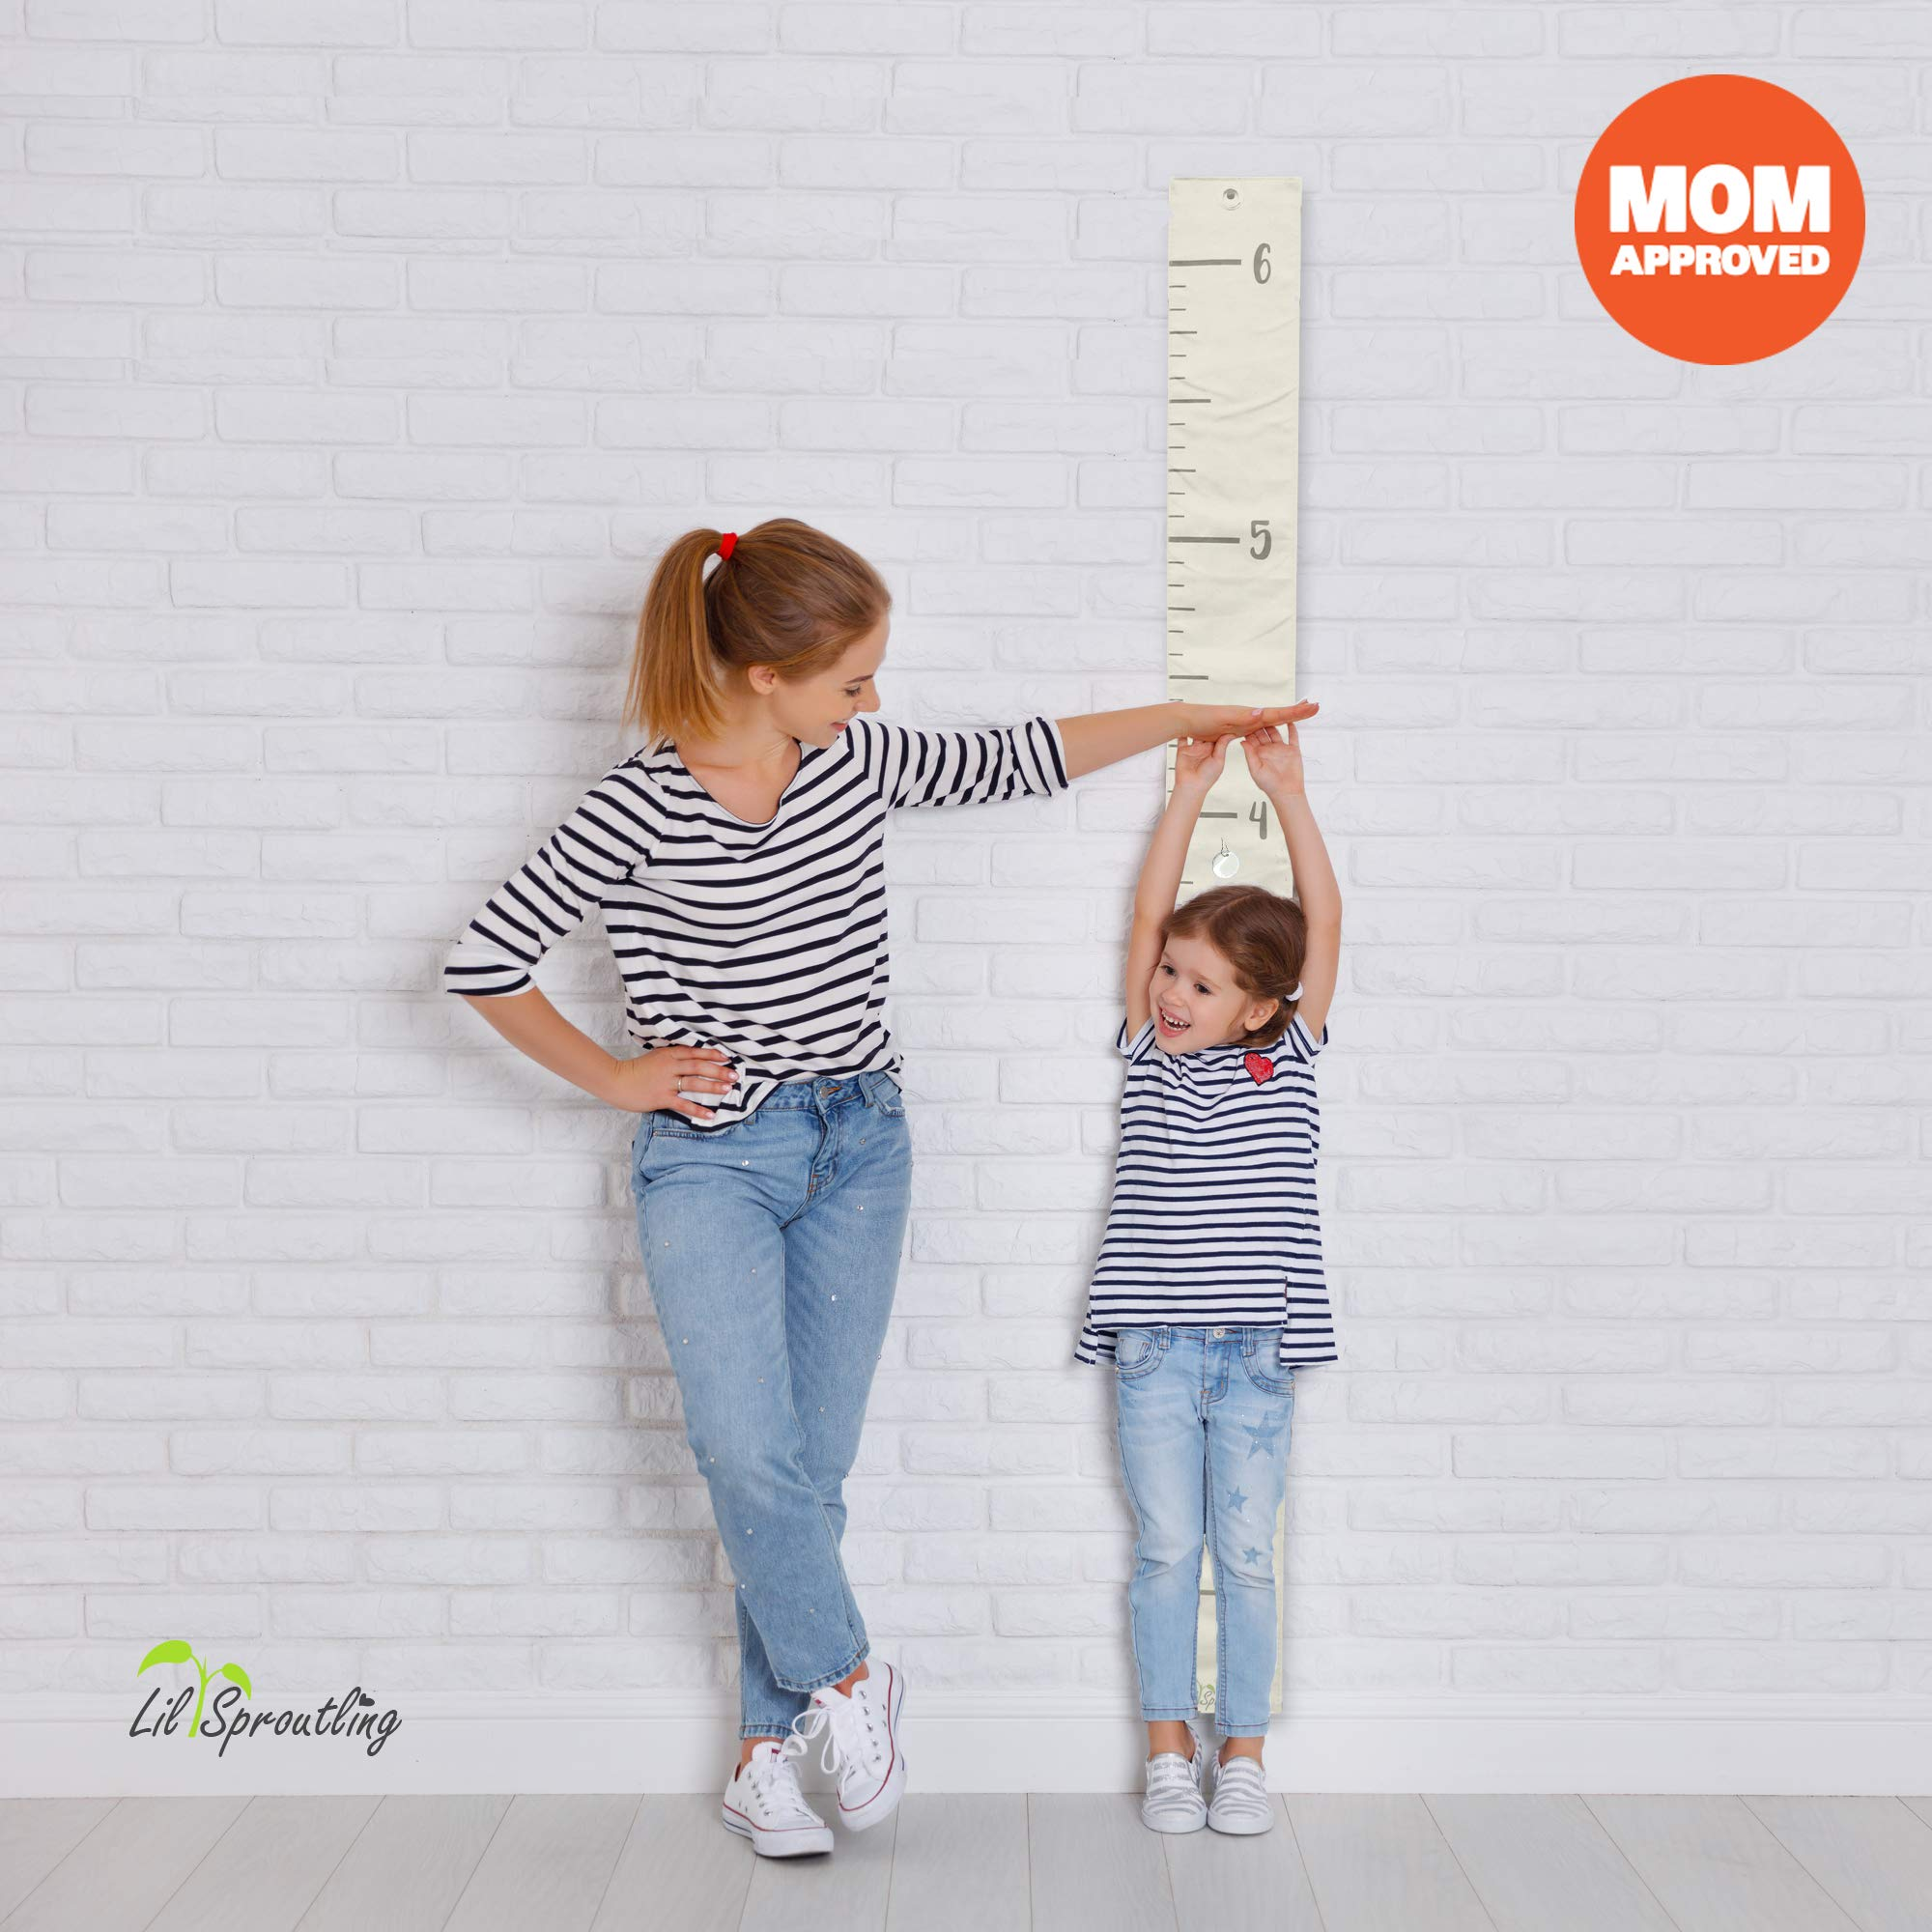 Lil Sproutling Natural Canvas Child Height Growth Chart - Includes 15 Key Tags & Gift Packaging - 69'' x 5.5'' - Neutral Design for Boys & Girls - Growth Wall Ruler Decor for Kids